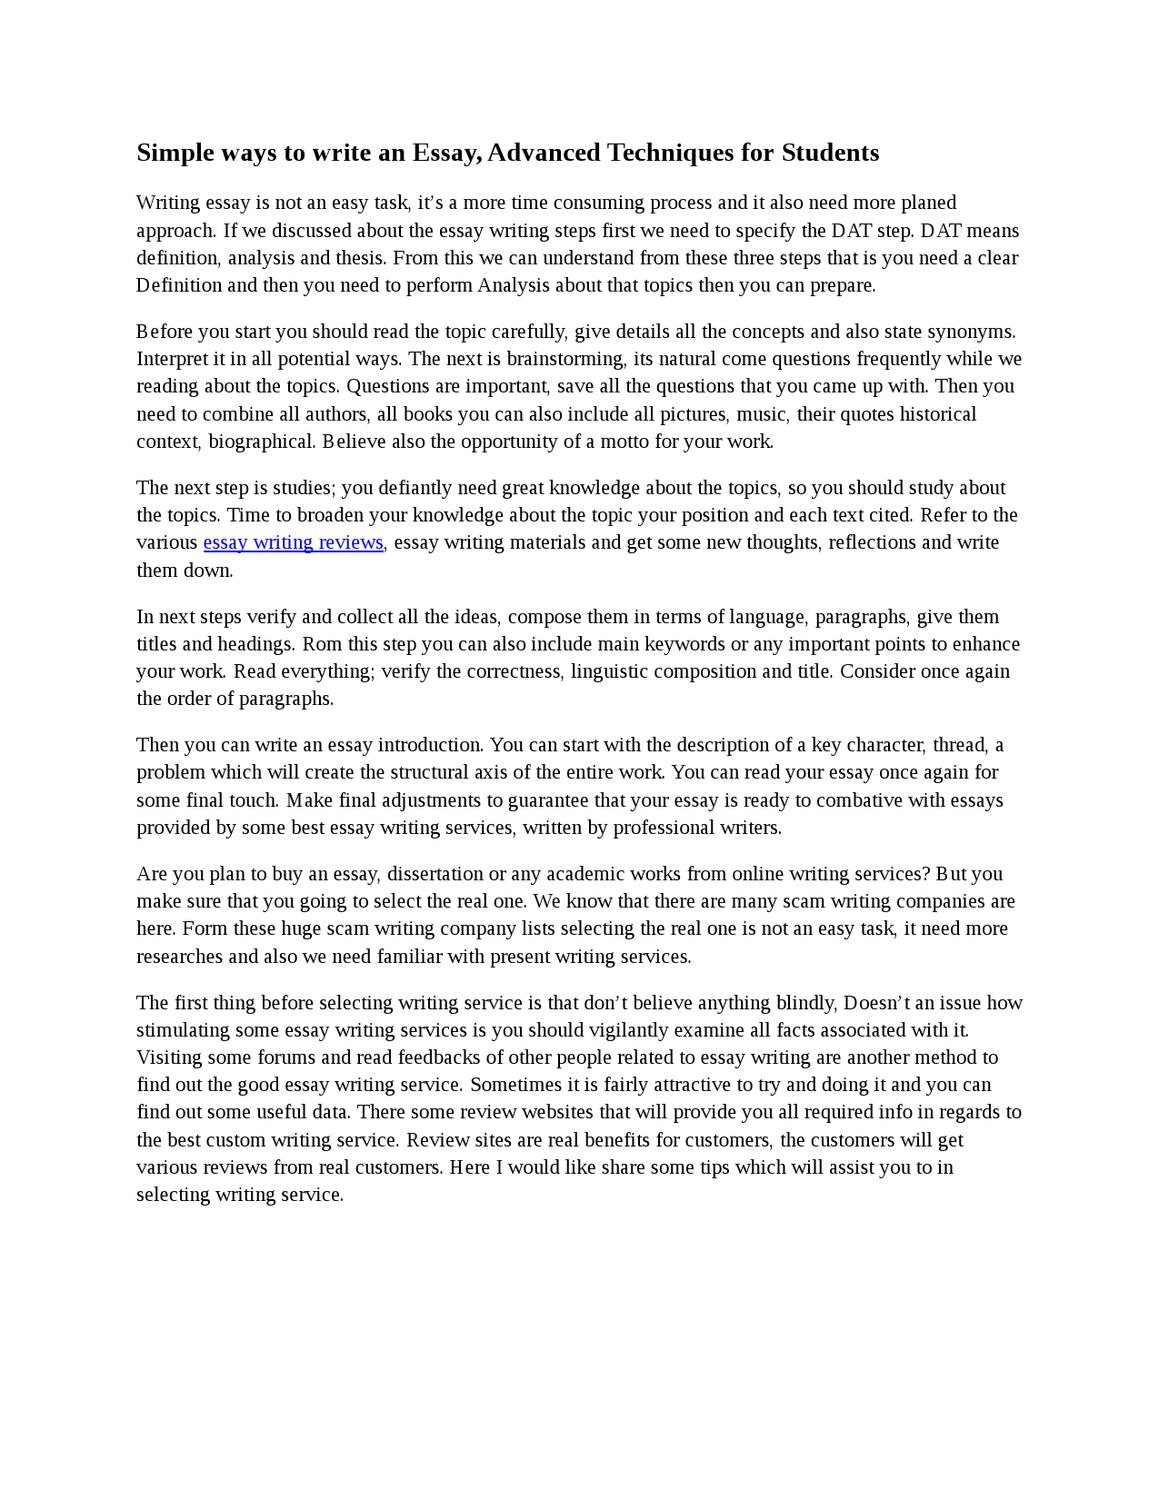 Science Essay Questions Simple Ways To Write An Essay Advanced Techniques For Students By Jessey  Broad  Issuu Essay On English Subject also Essay On Pollution In English Simple Ways To Write An Essay Advanced Techniques For Students By  Cause And Effect Essay Topics For High School